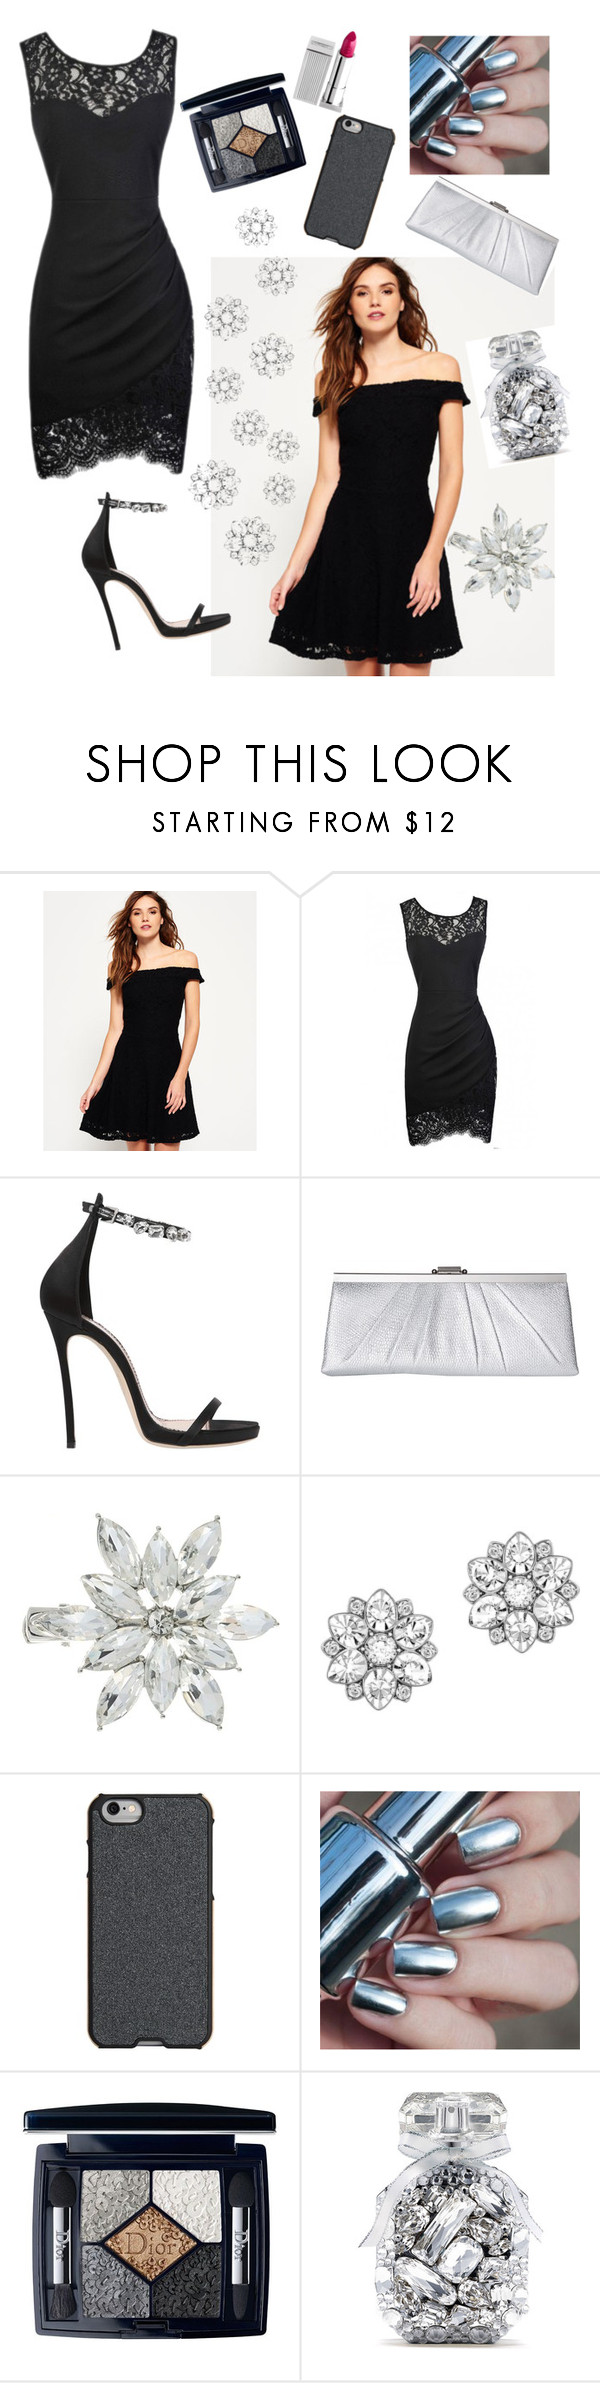 """""""Little black dress"""" by vidonni84 ❤ liked on Polyvore featuring Superdry, Dsquared2, Jessica McClintock, Swarovski, Agent 18, Christian Dior, Victoria's Secret and Lipstick Queen"""